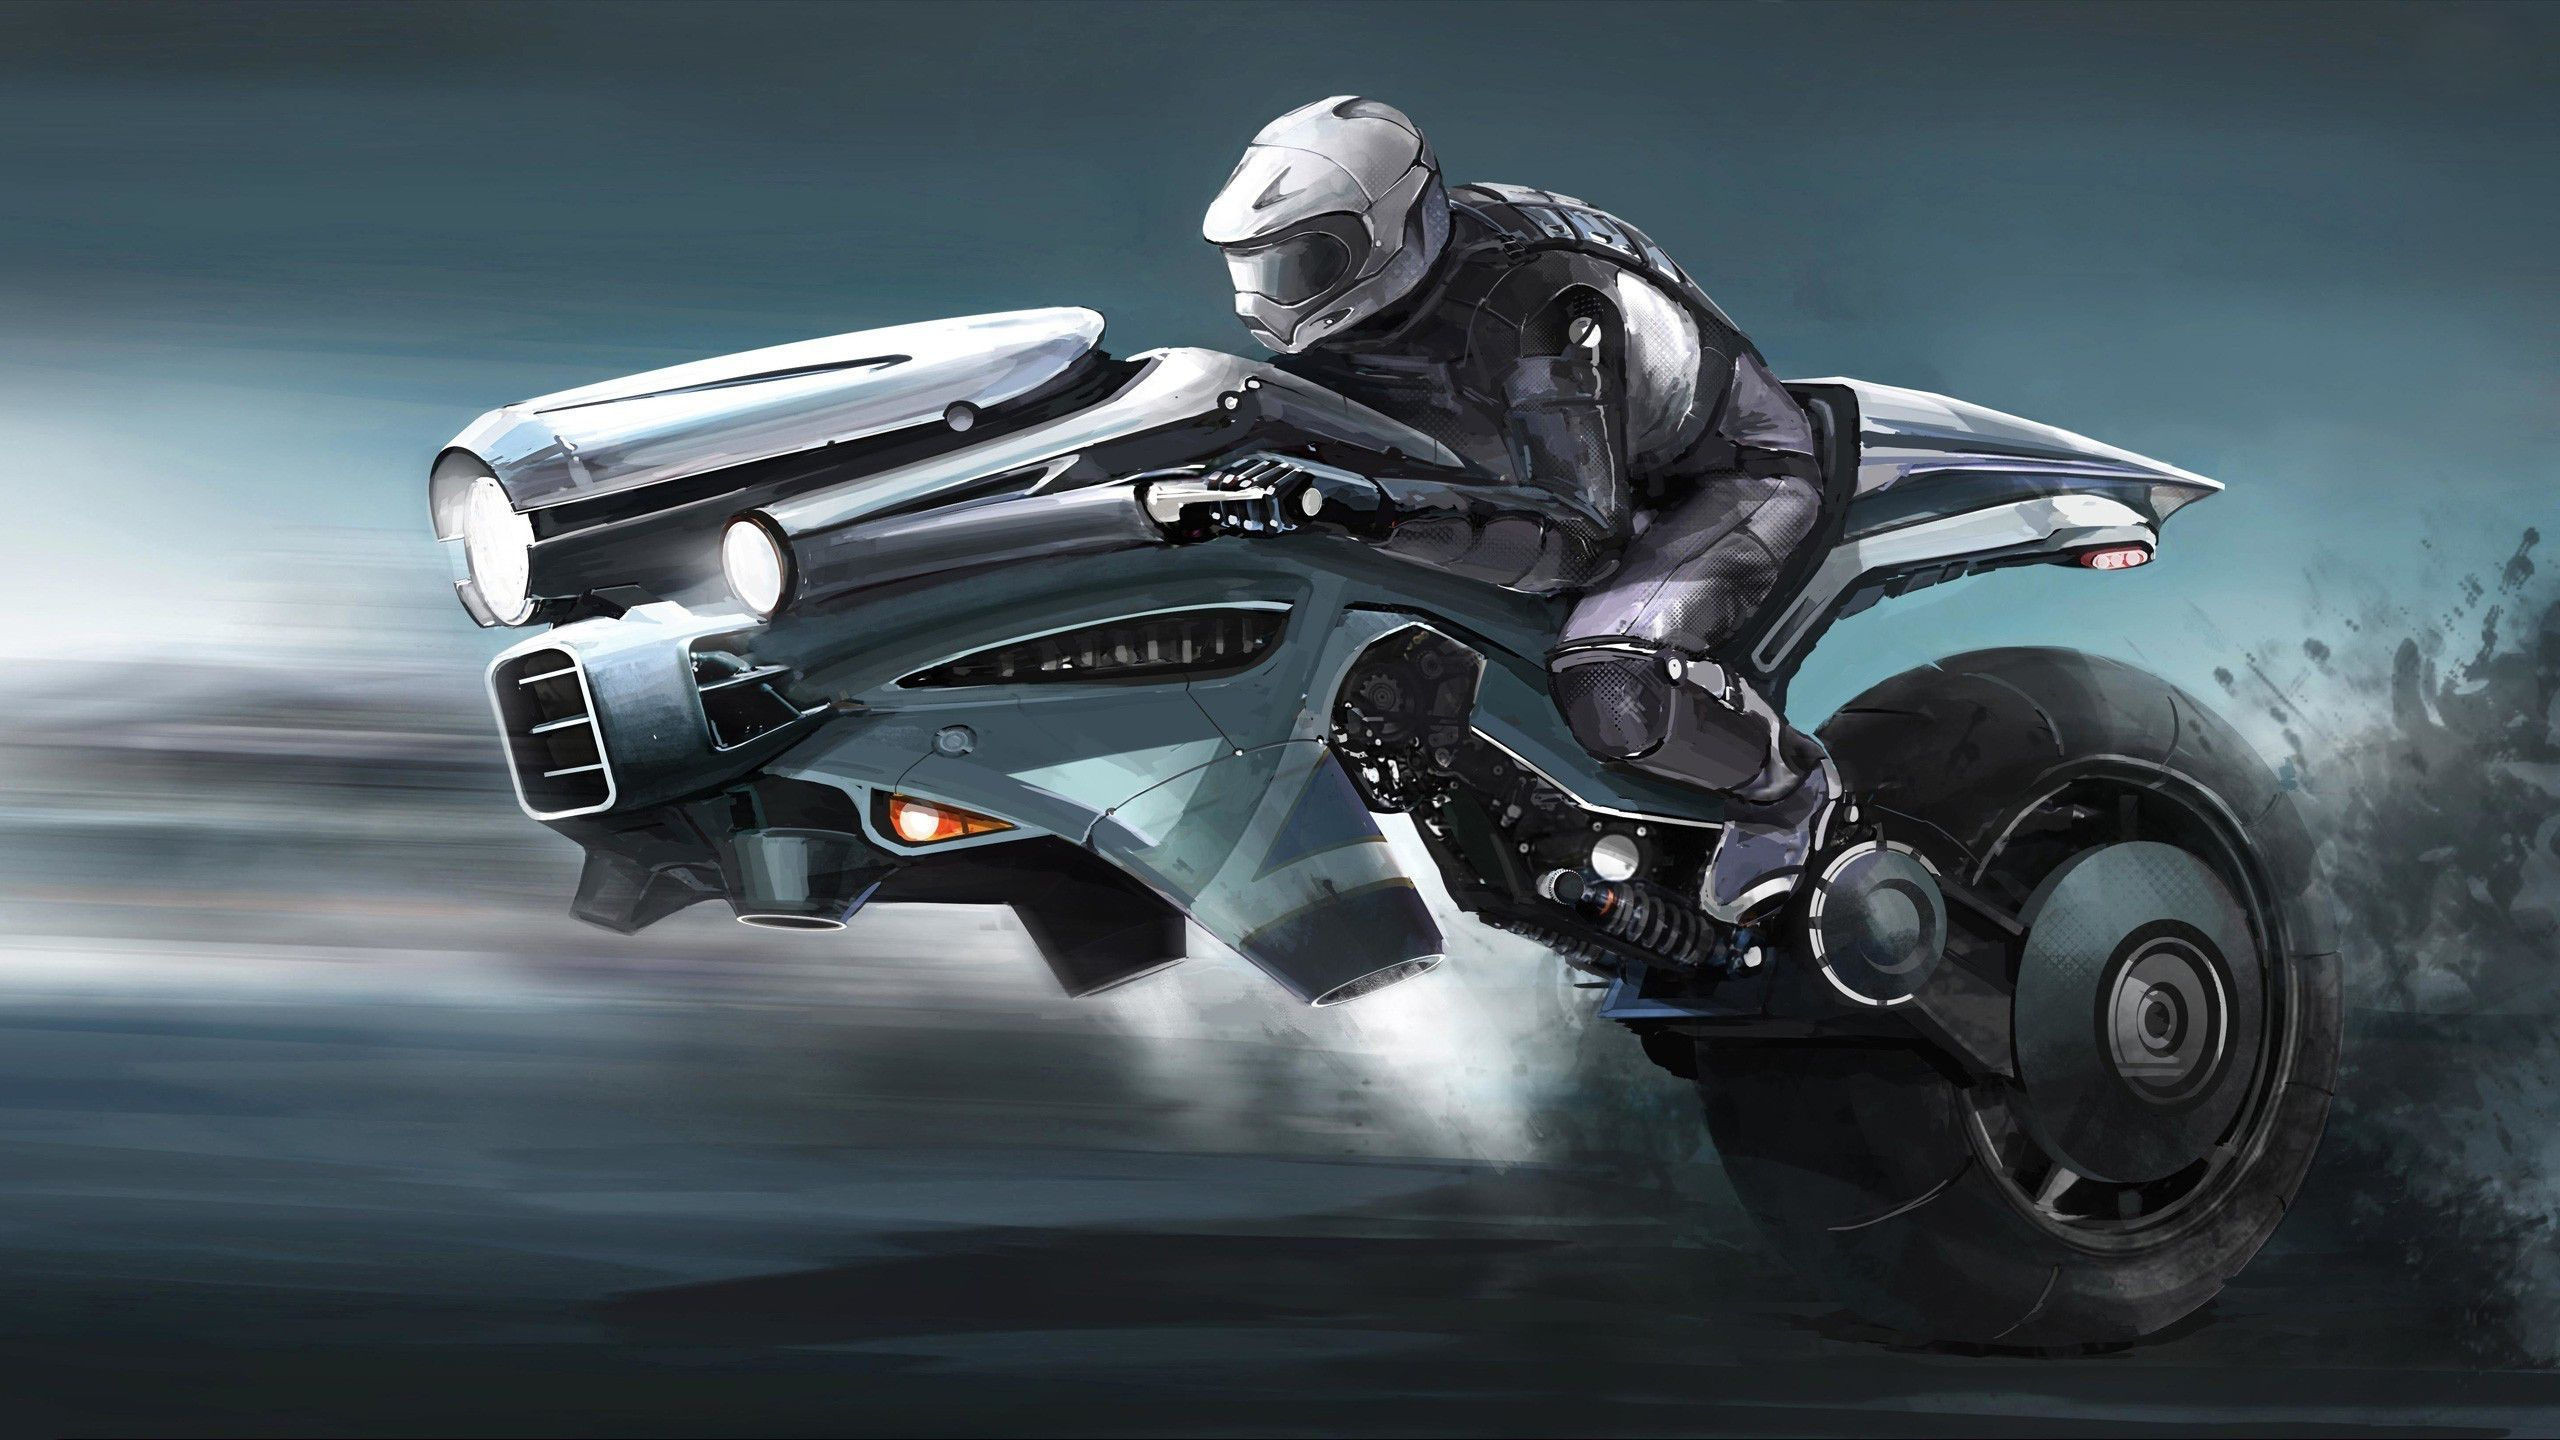 Sci Fi Motorcycle Wallpapers   Top Sci Fi Motorcycle 2560x1440